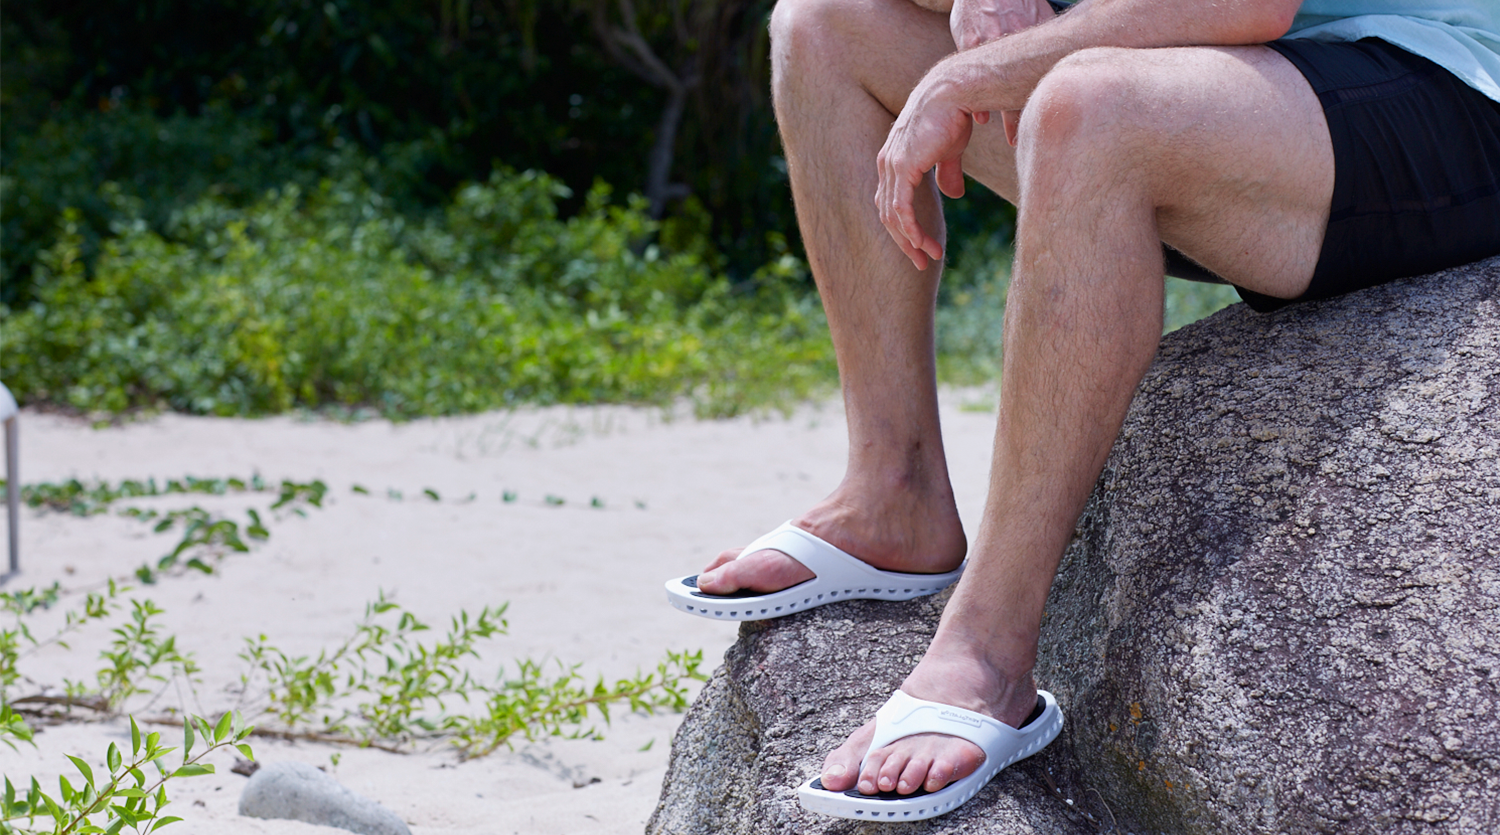 sand free footwear for adults